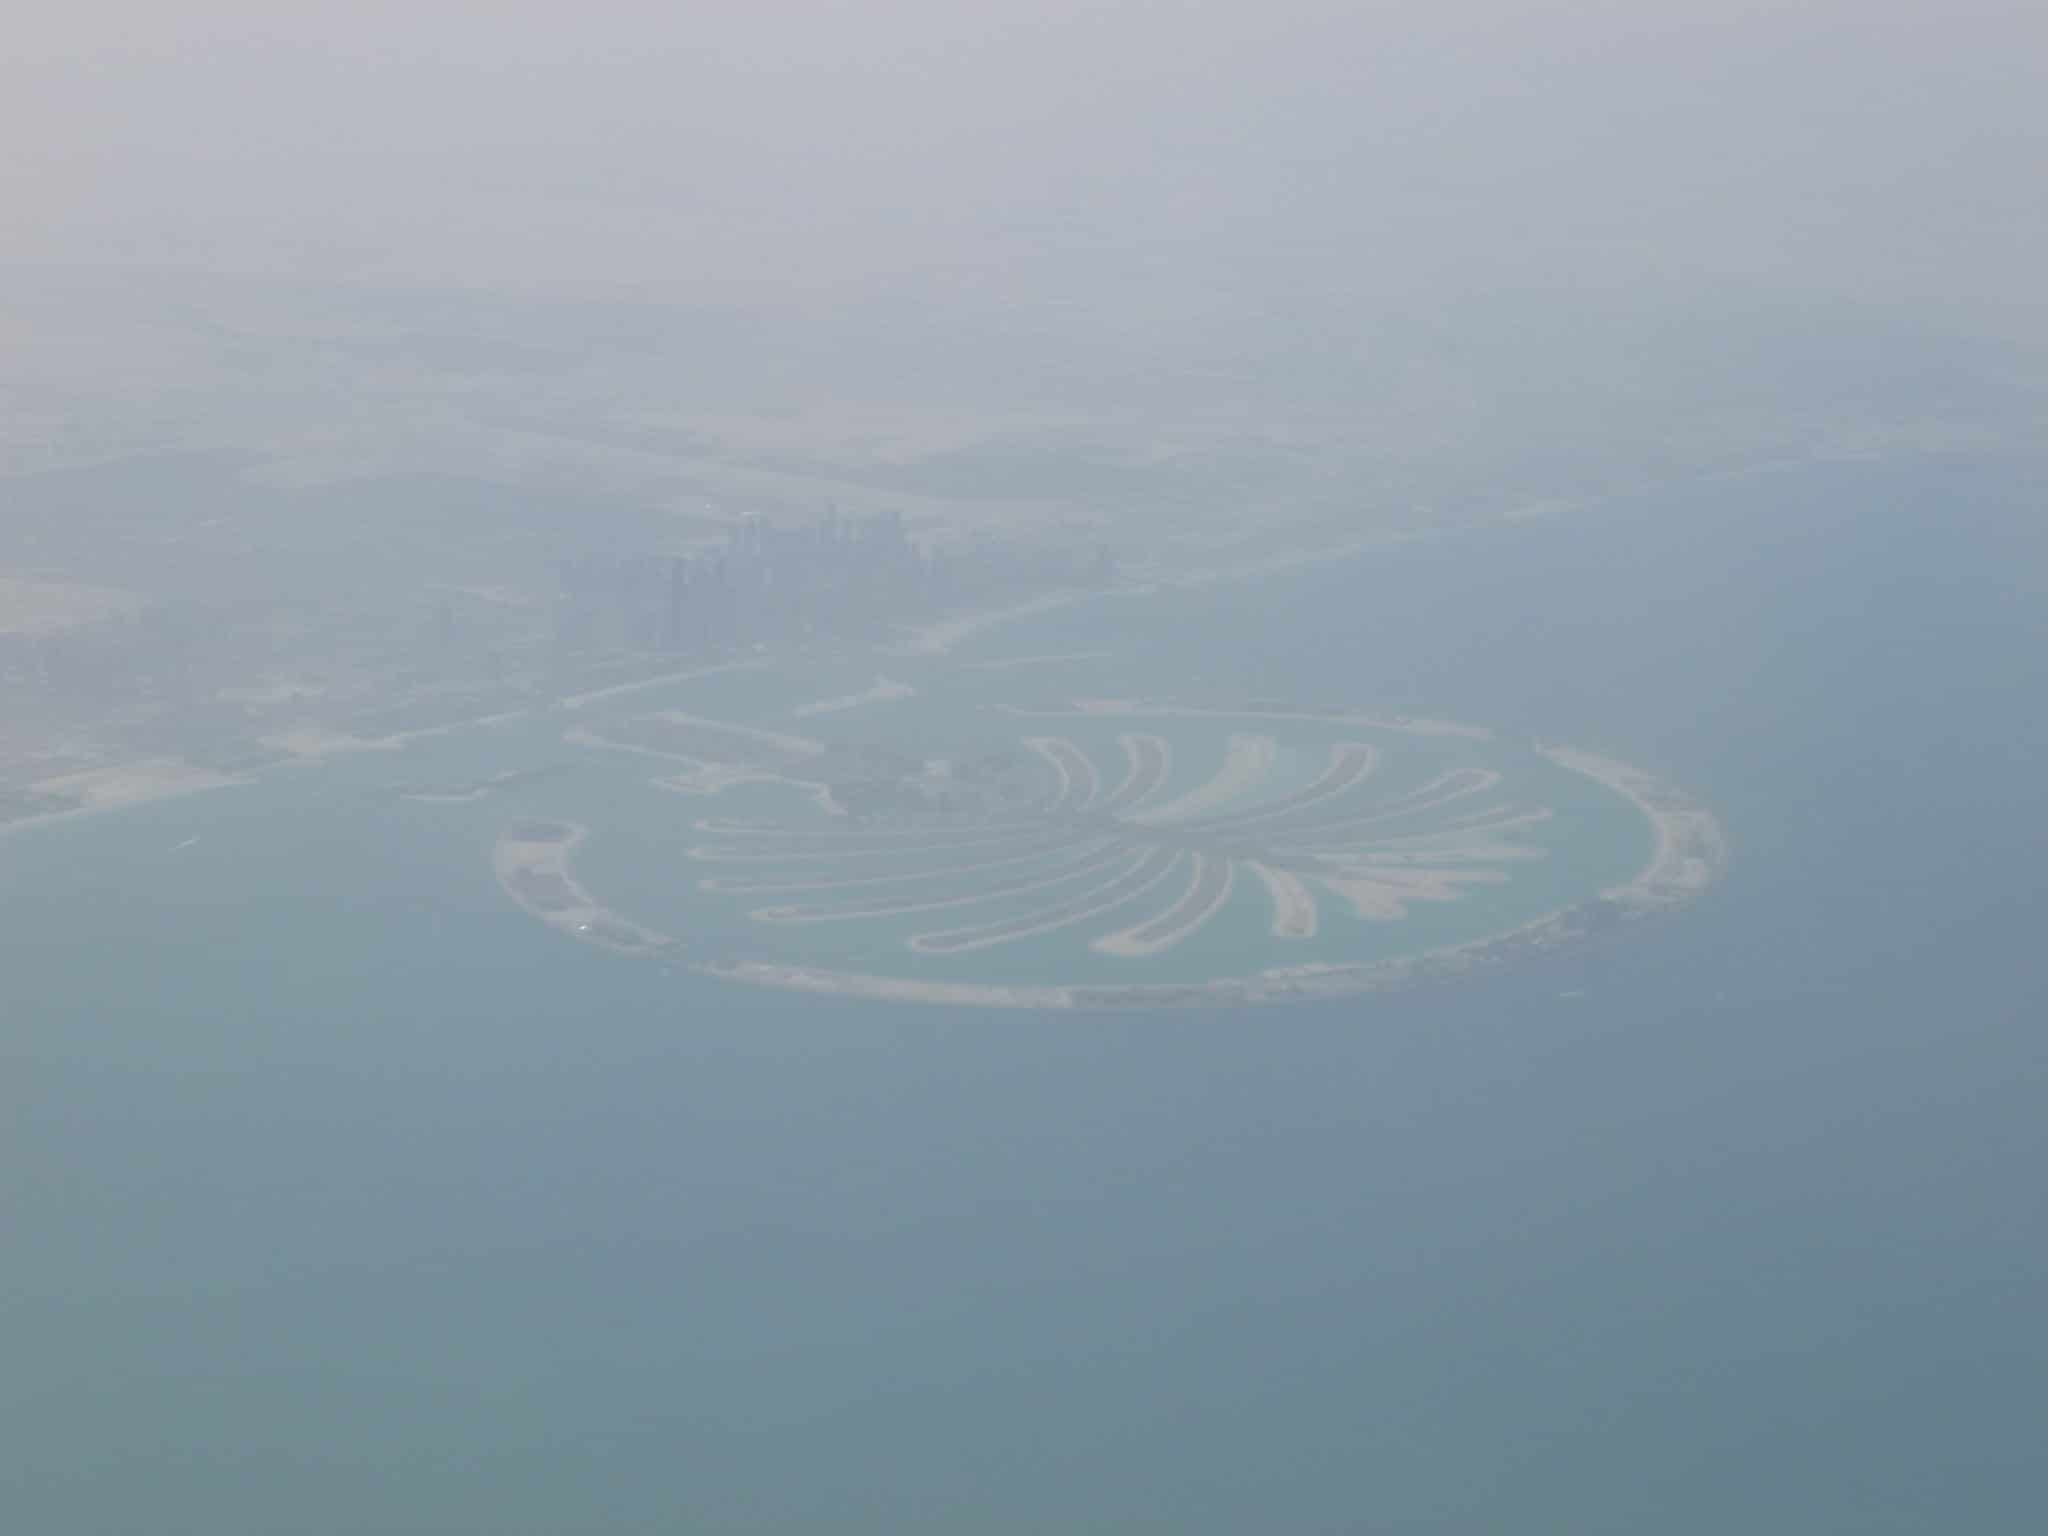 Discover more the palm shaped islands of Dubai- Wandering Life